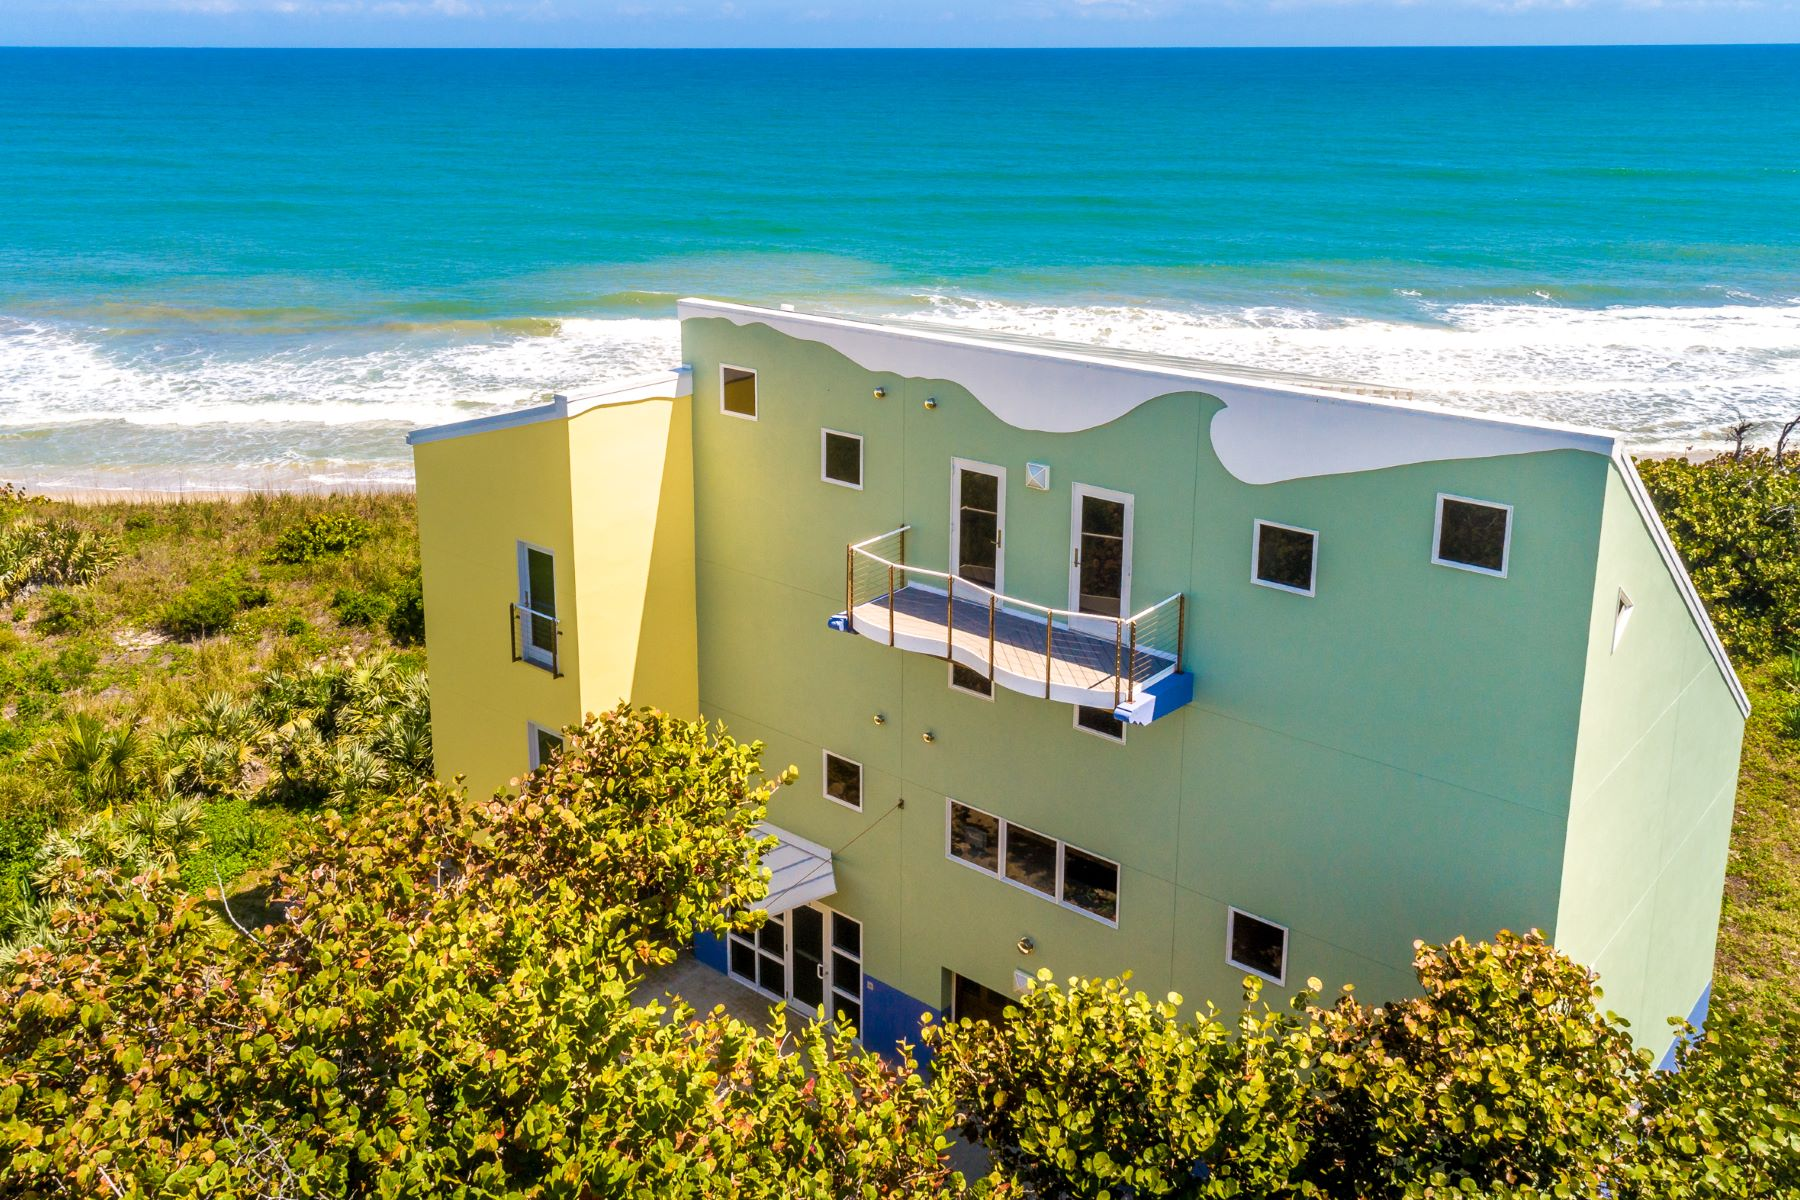 Additional photo for property listing at Spectacular Oceanfront Home Bordering Nature Preserve. 4515 S Highway A1A Melbourne Beach, Florida 32951 Förenta staterna